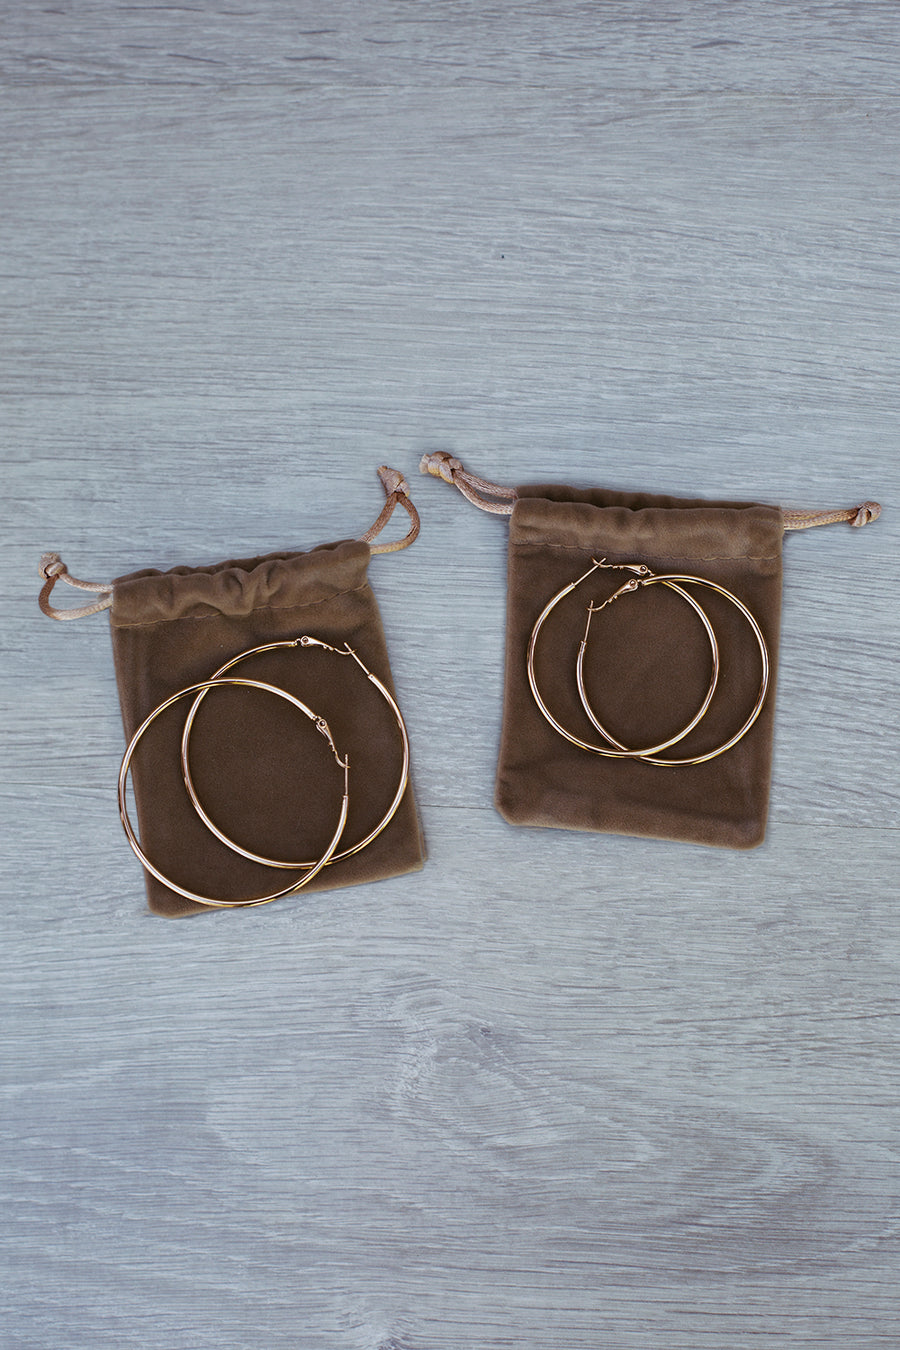 Big City Hoop Earrings in Gold for $35.00